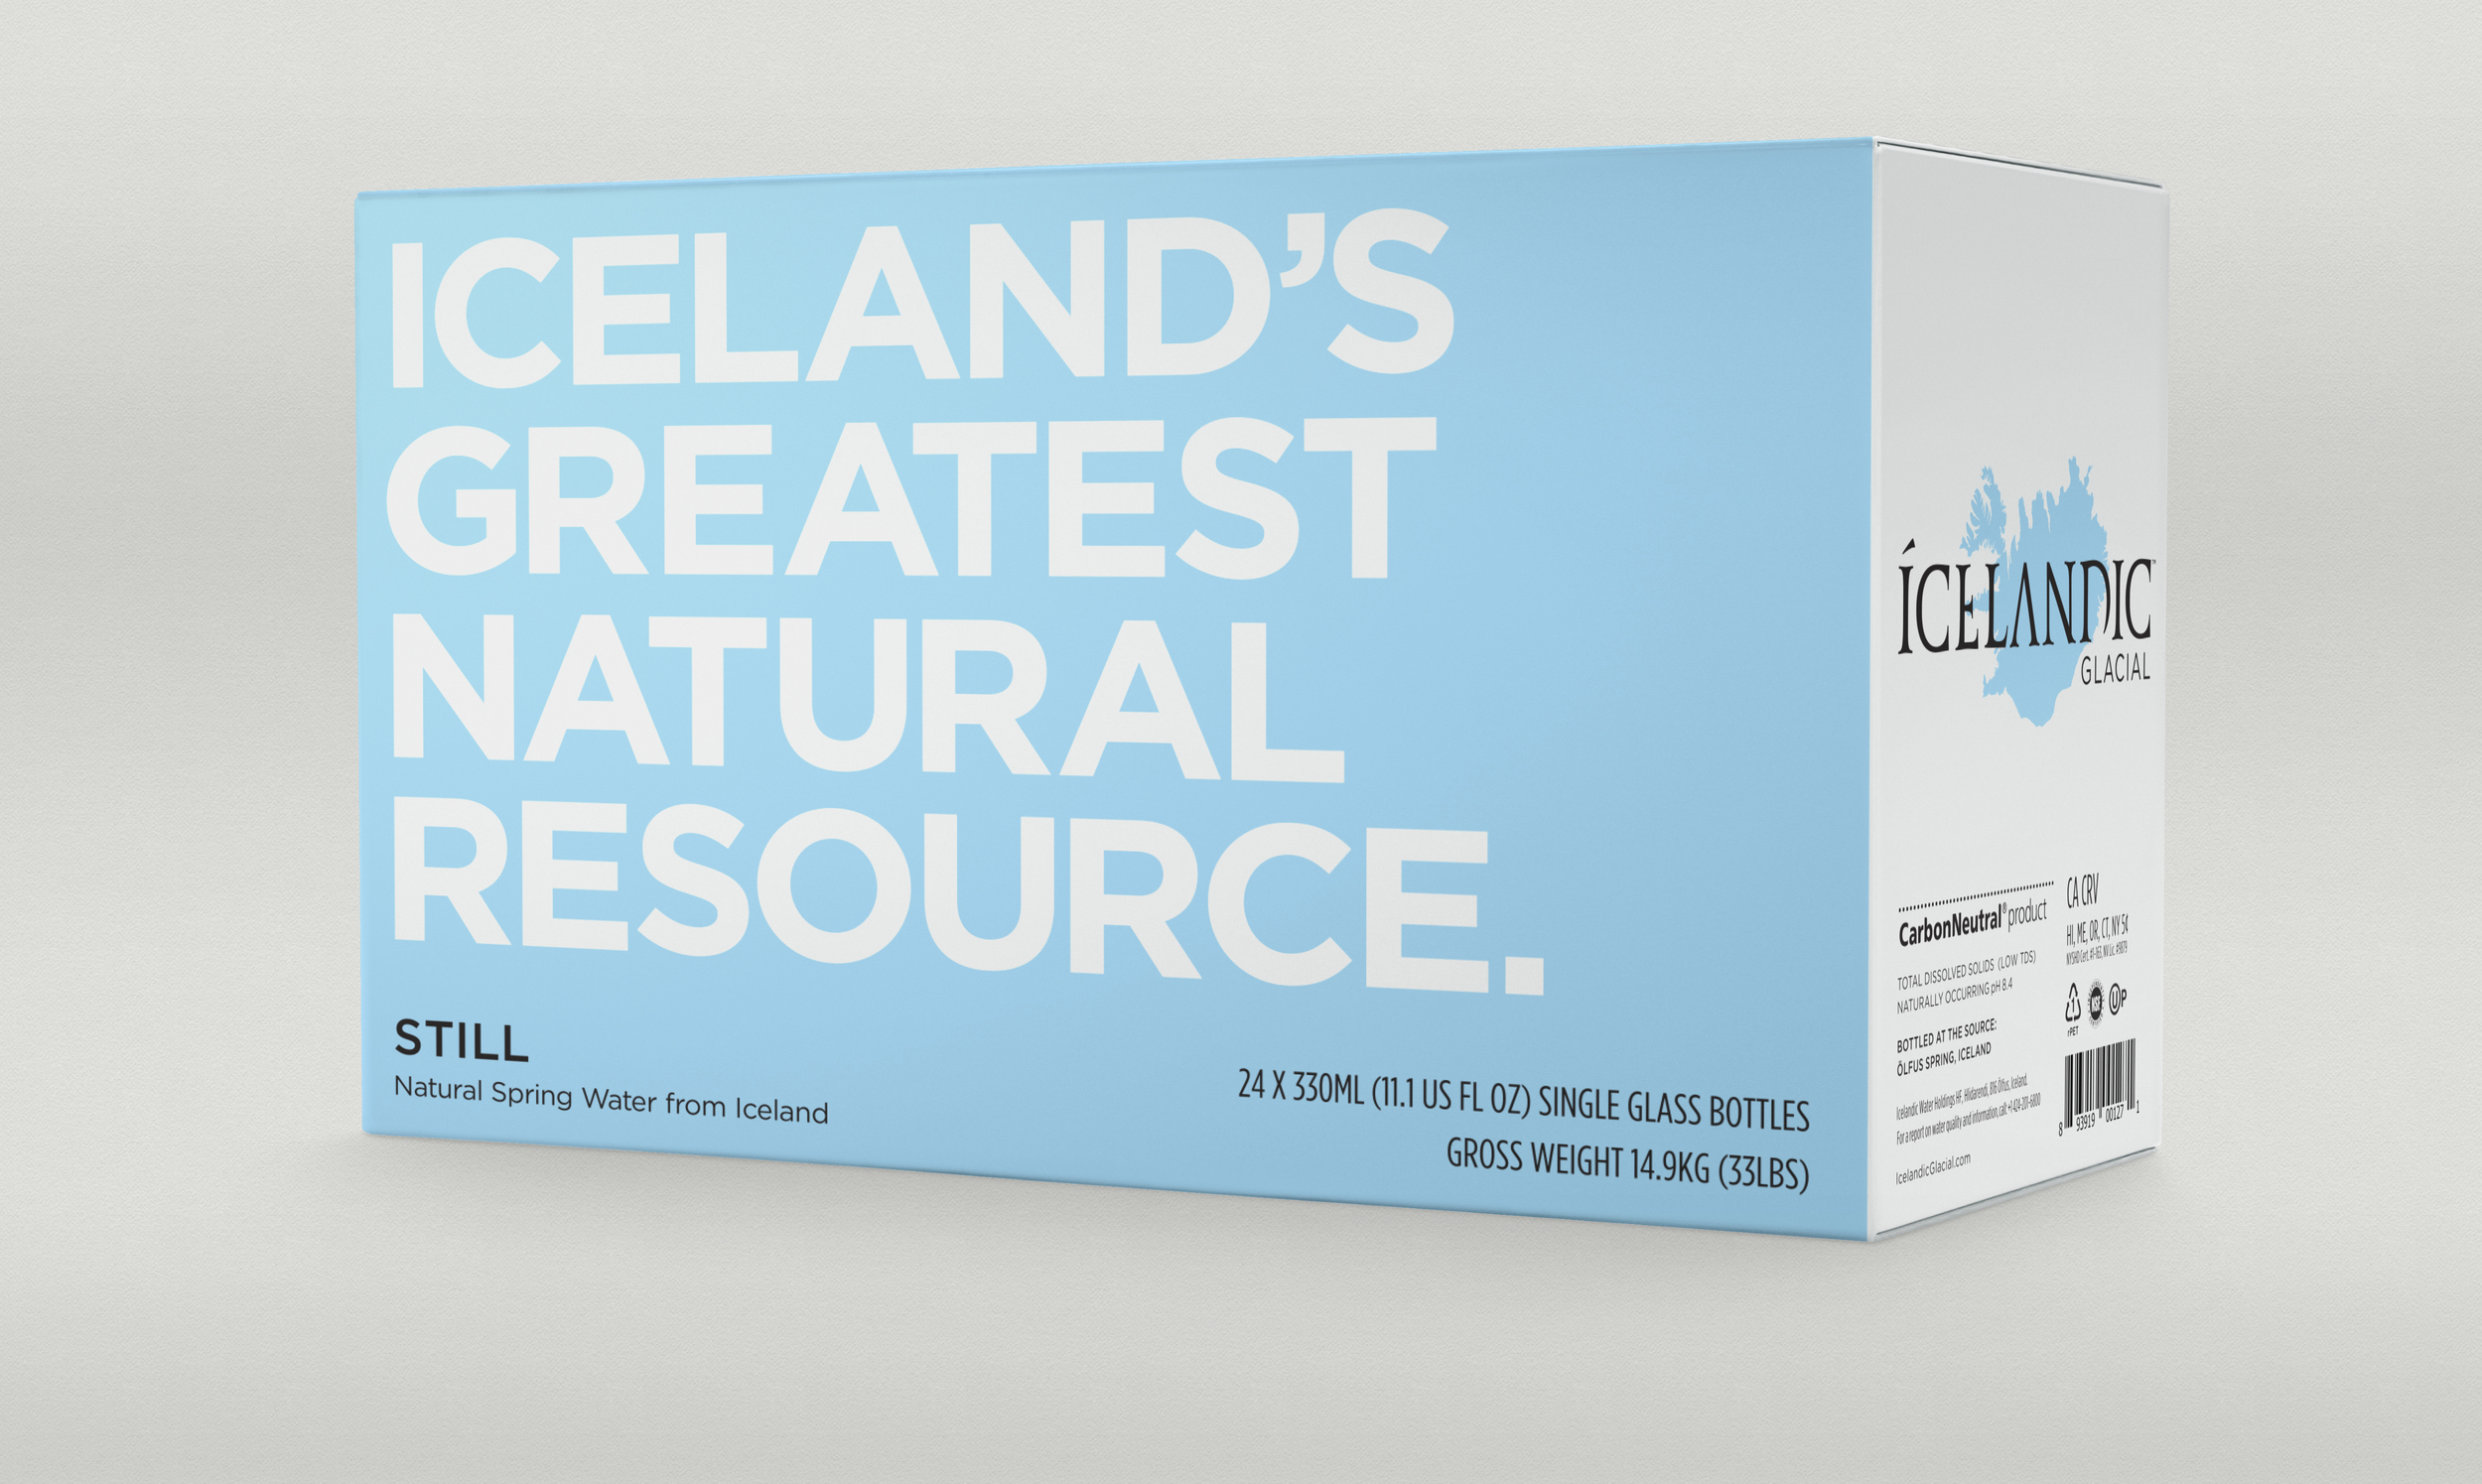 Icelandic_Carton_24P_Still_Back.jpg